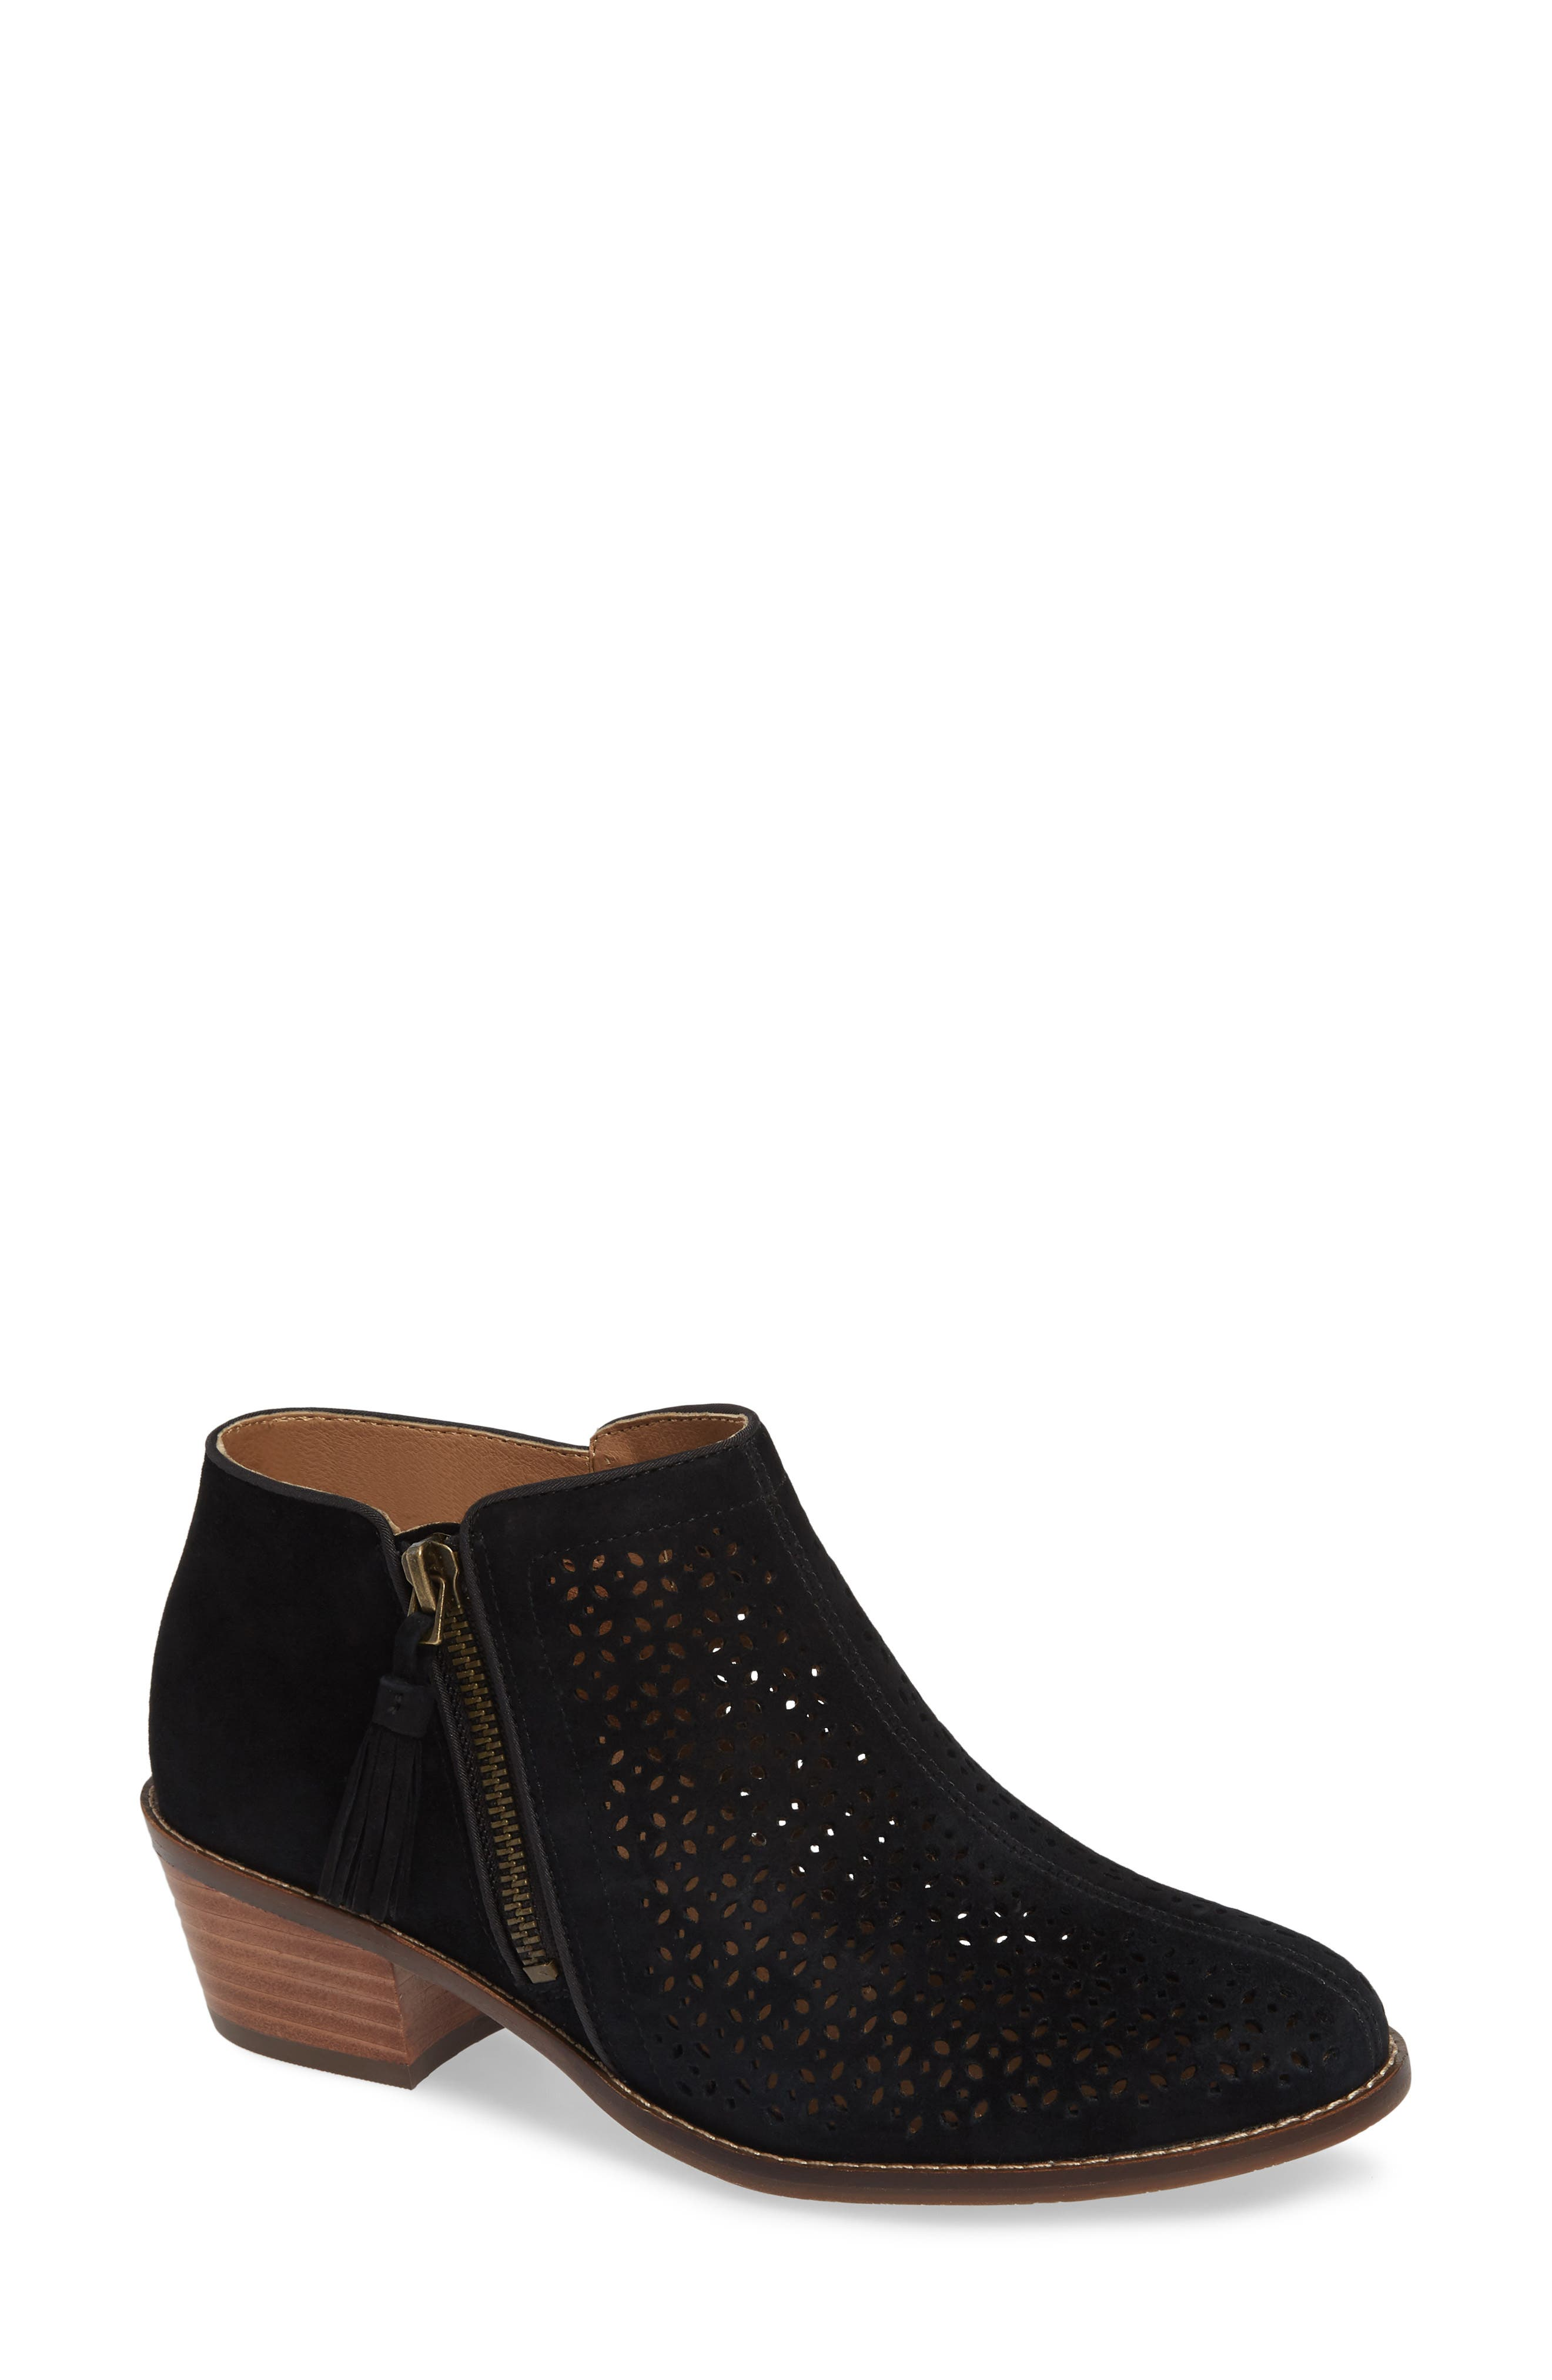 Daytona Perforated Bootie,                             Main thumbnail 1, color,                             BLACK SUEDE